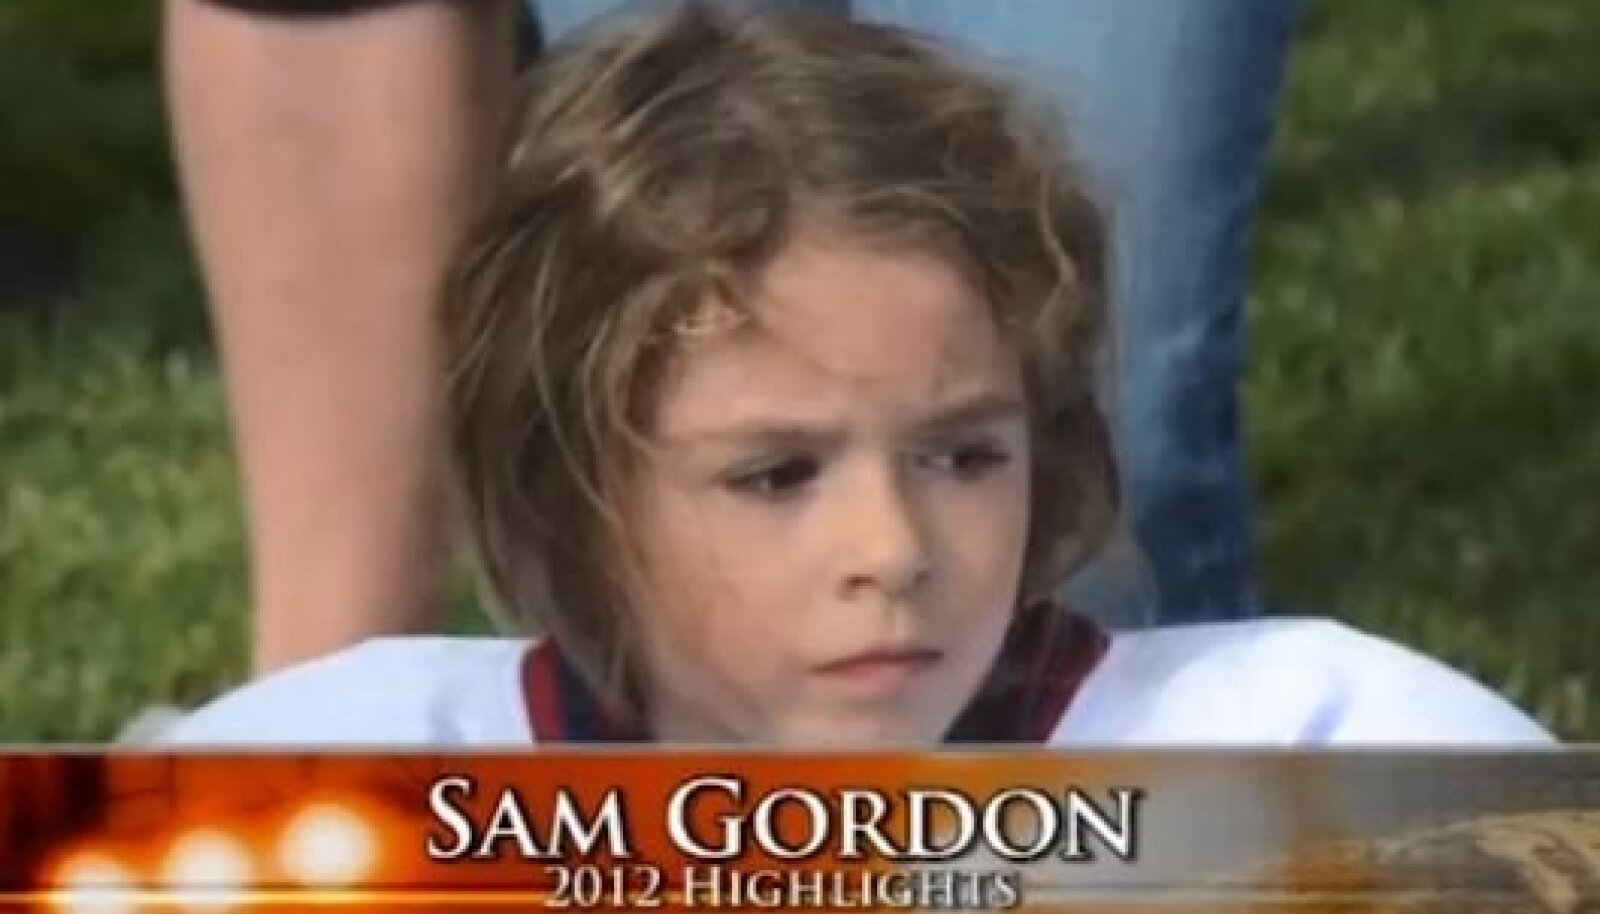 Sam Gordon, foto YouTube